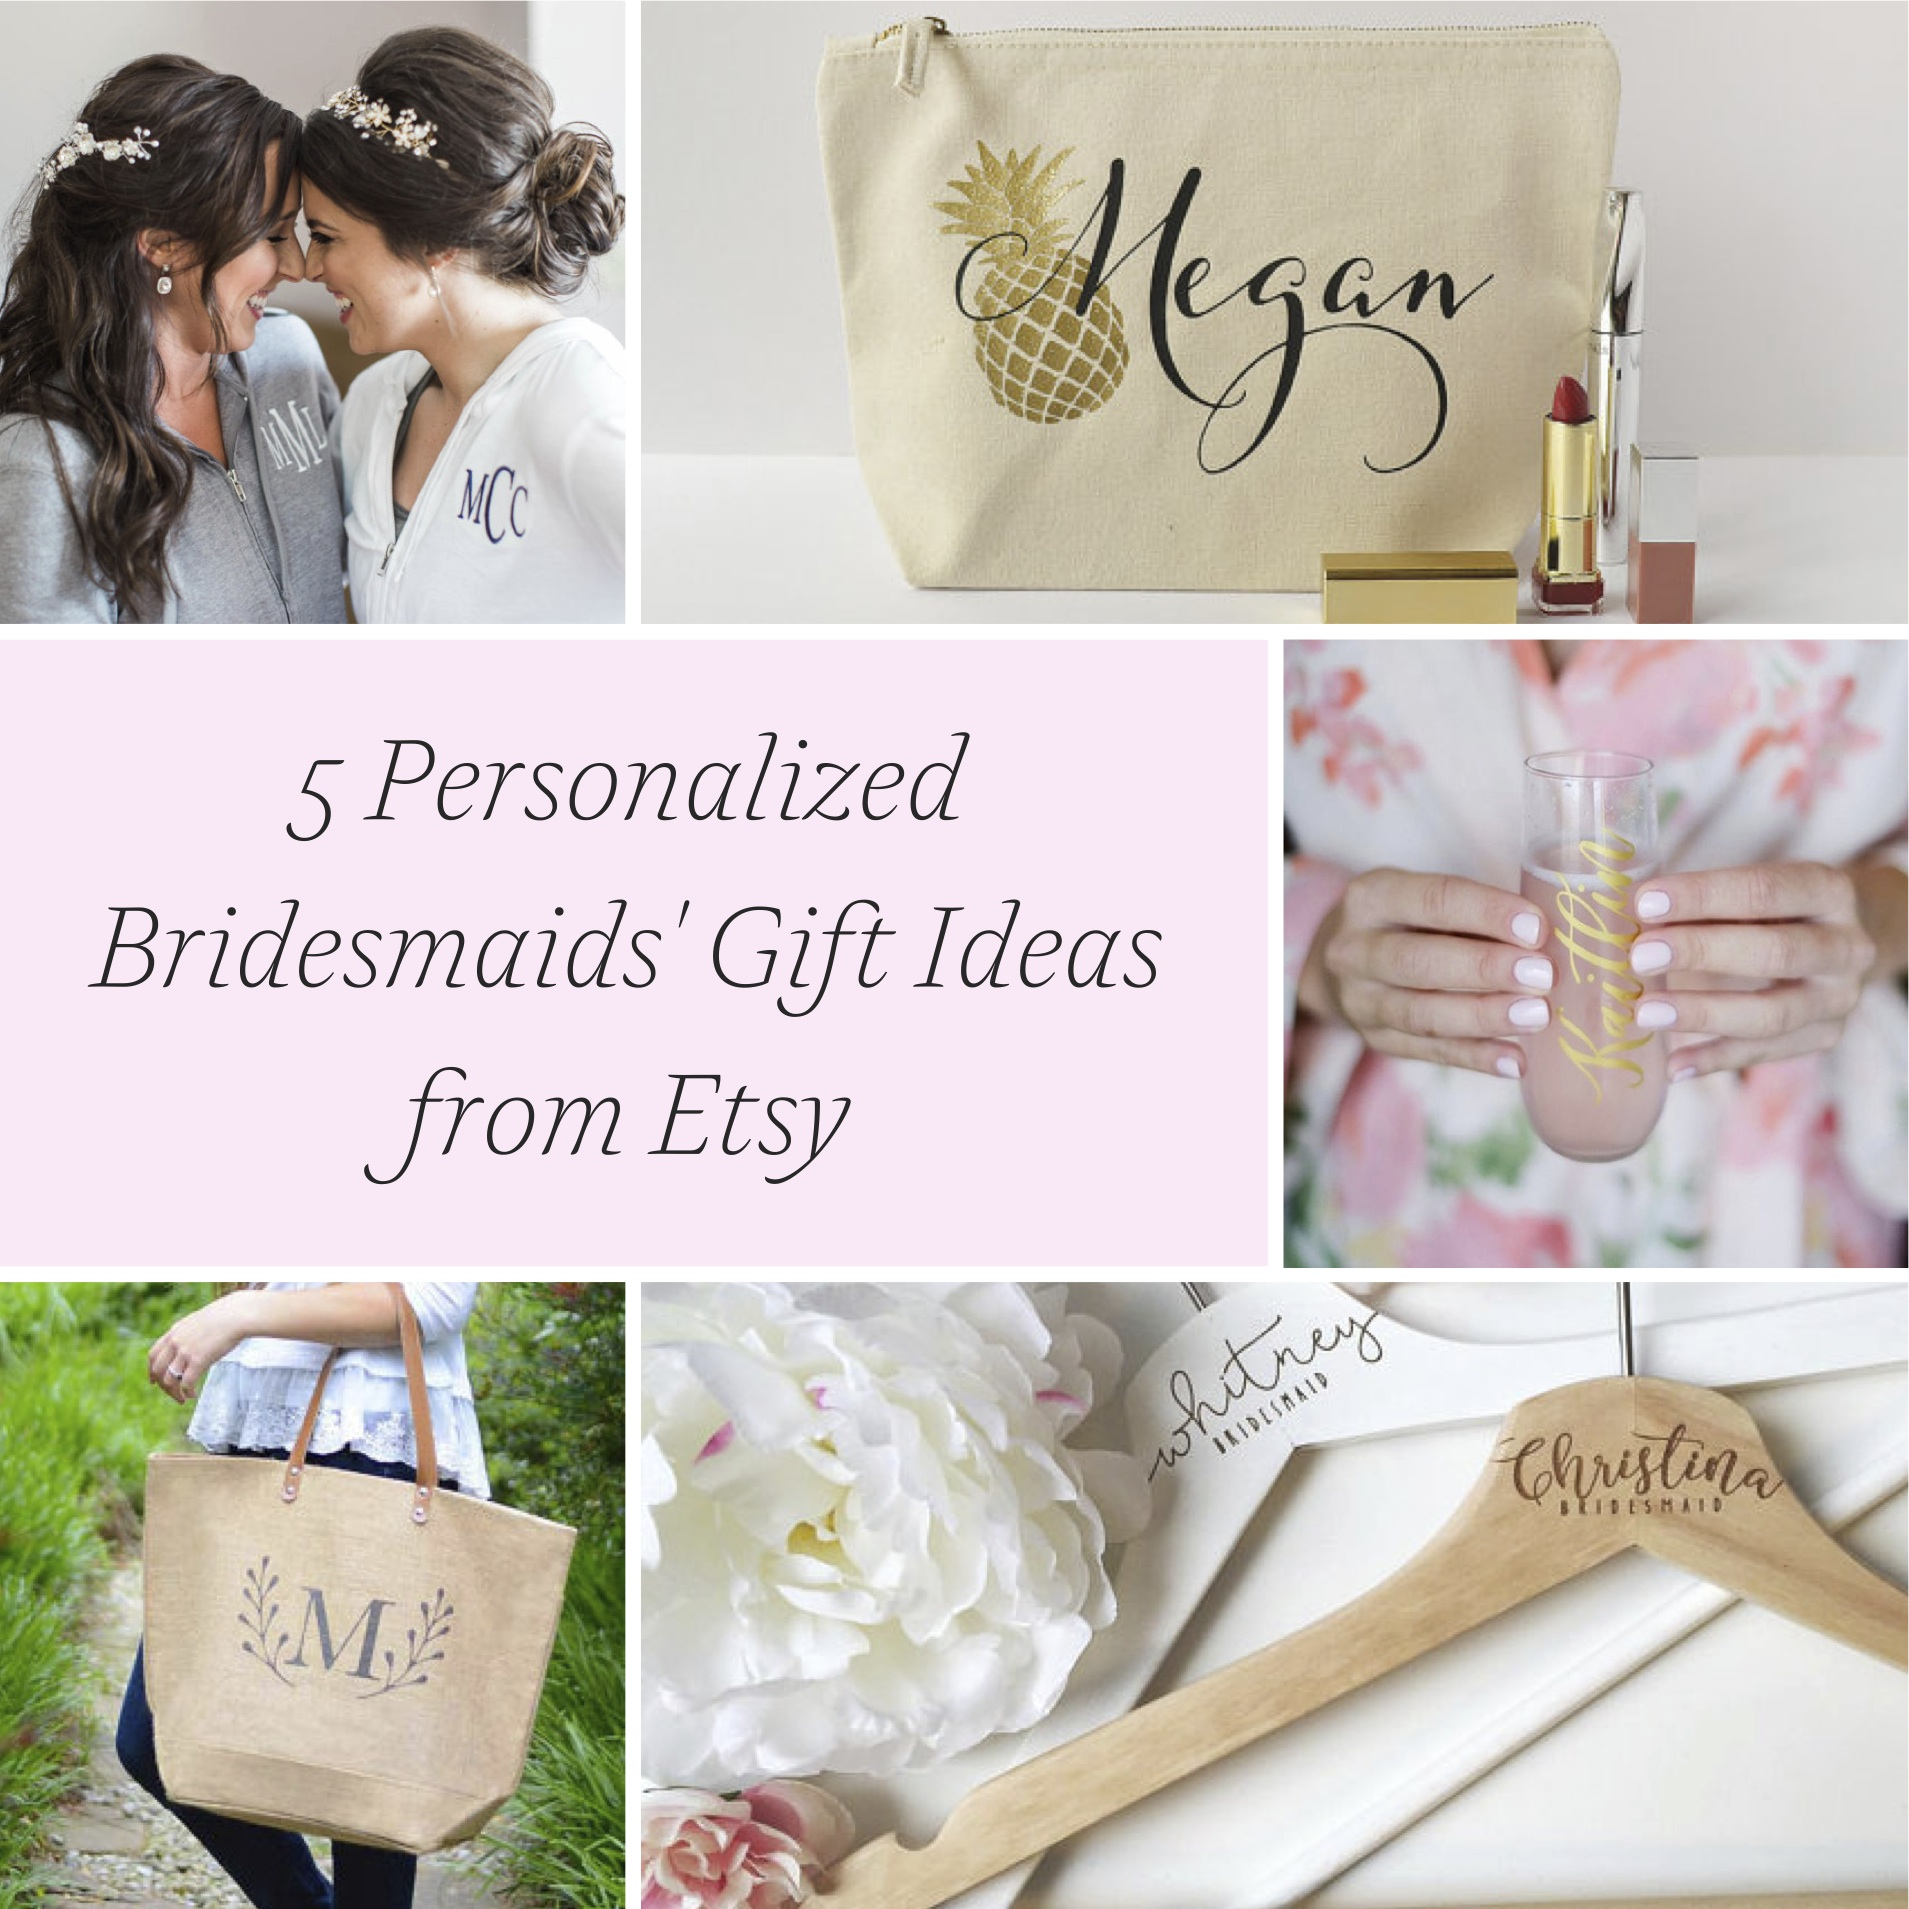 5 Personalized Bridesmaids' Gift Ideas